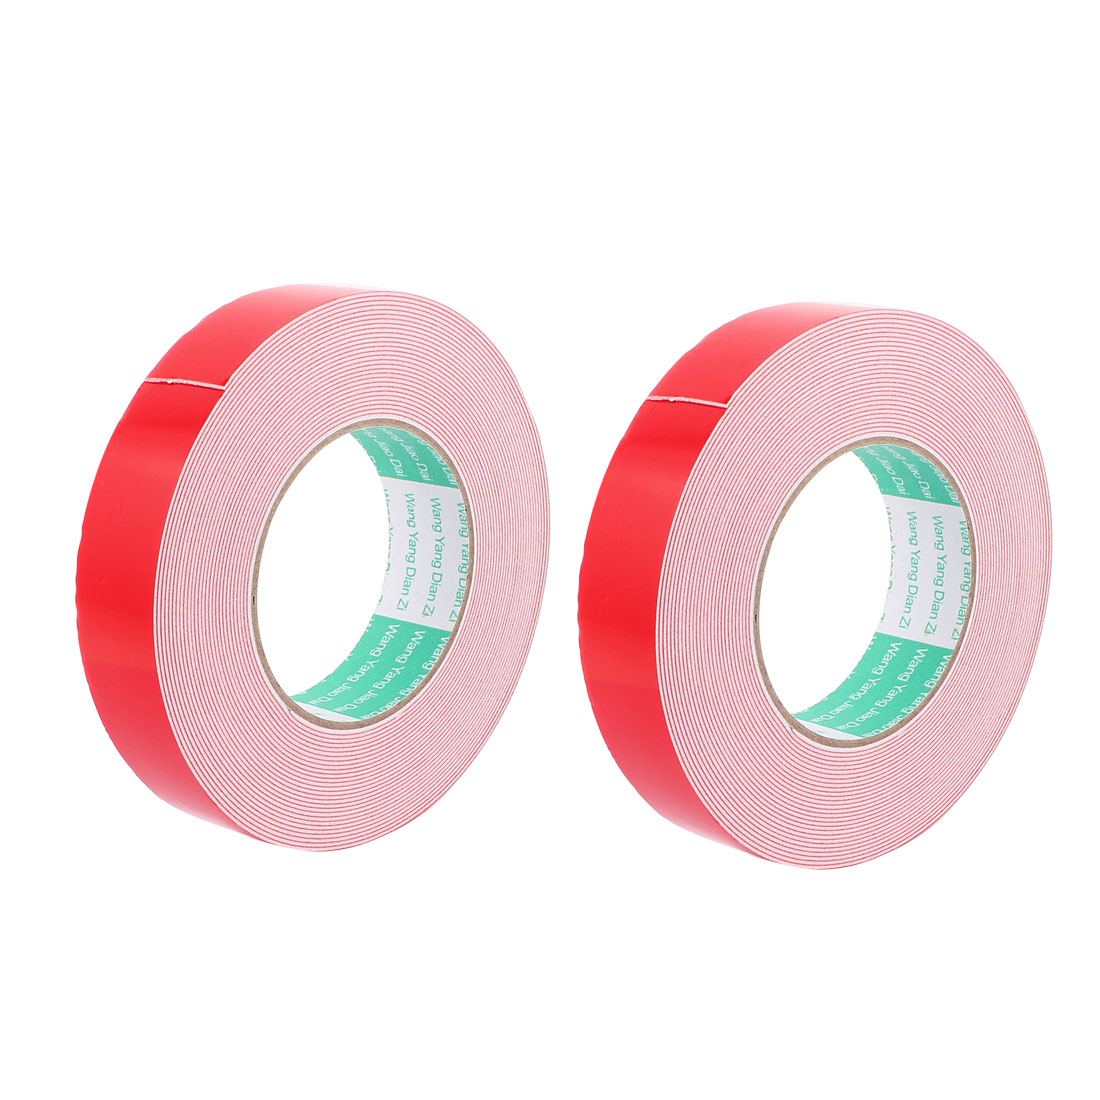 2PCS 30MM Width 10M Long 1MM Thick White Dual Sided Waterproof Sponge Tape for Car